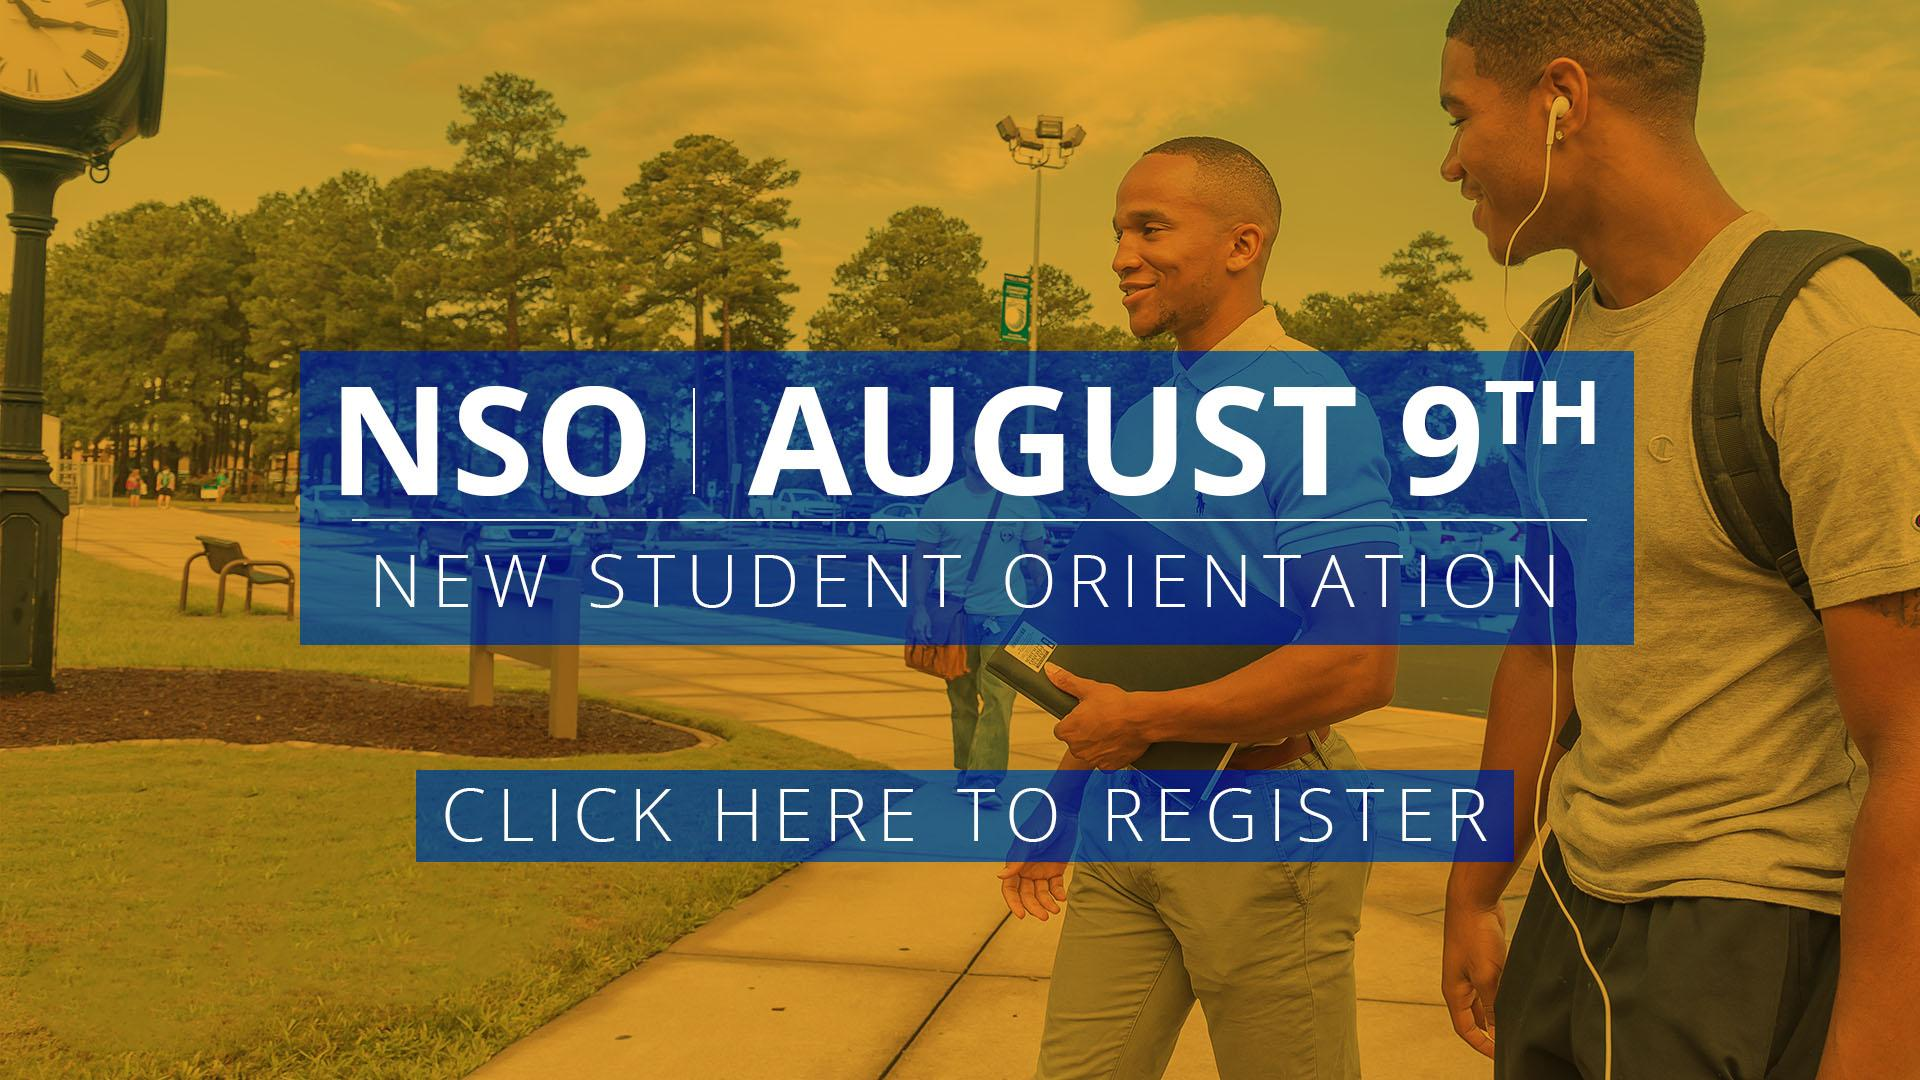 New Student Orientation - August 9th. Click here to Register.